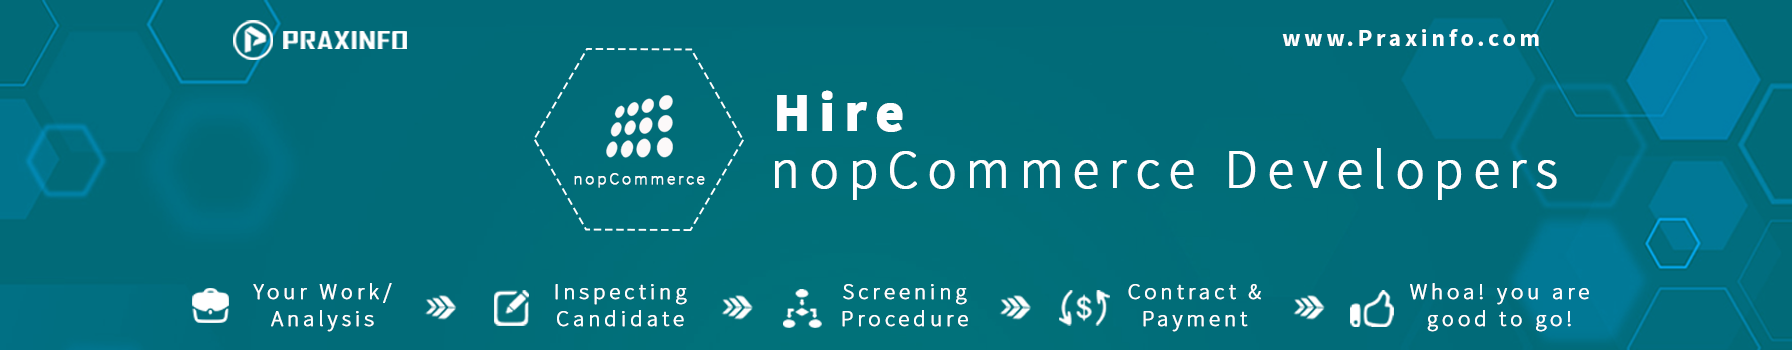 hire-nopCommerce-developer.png